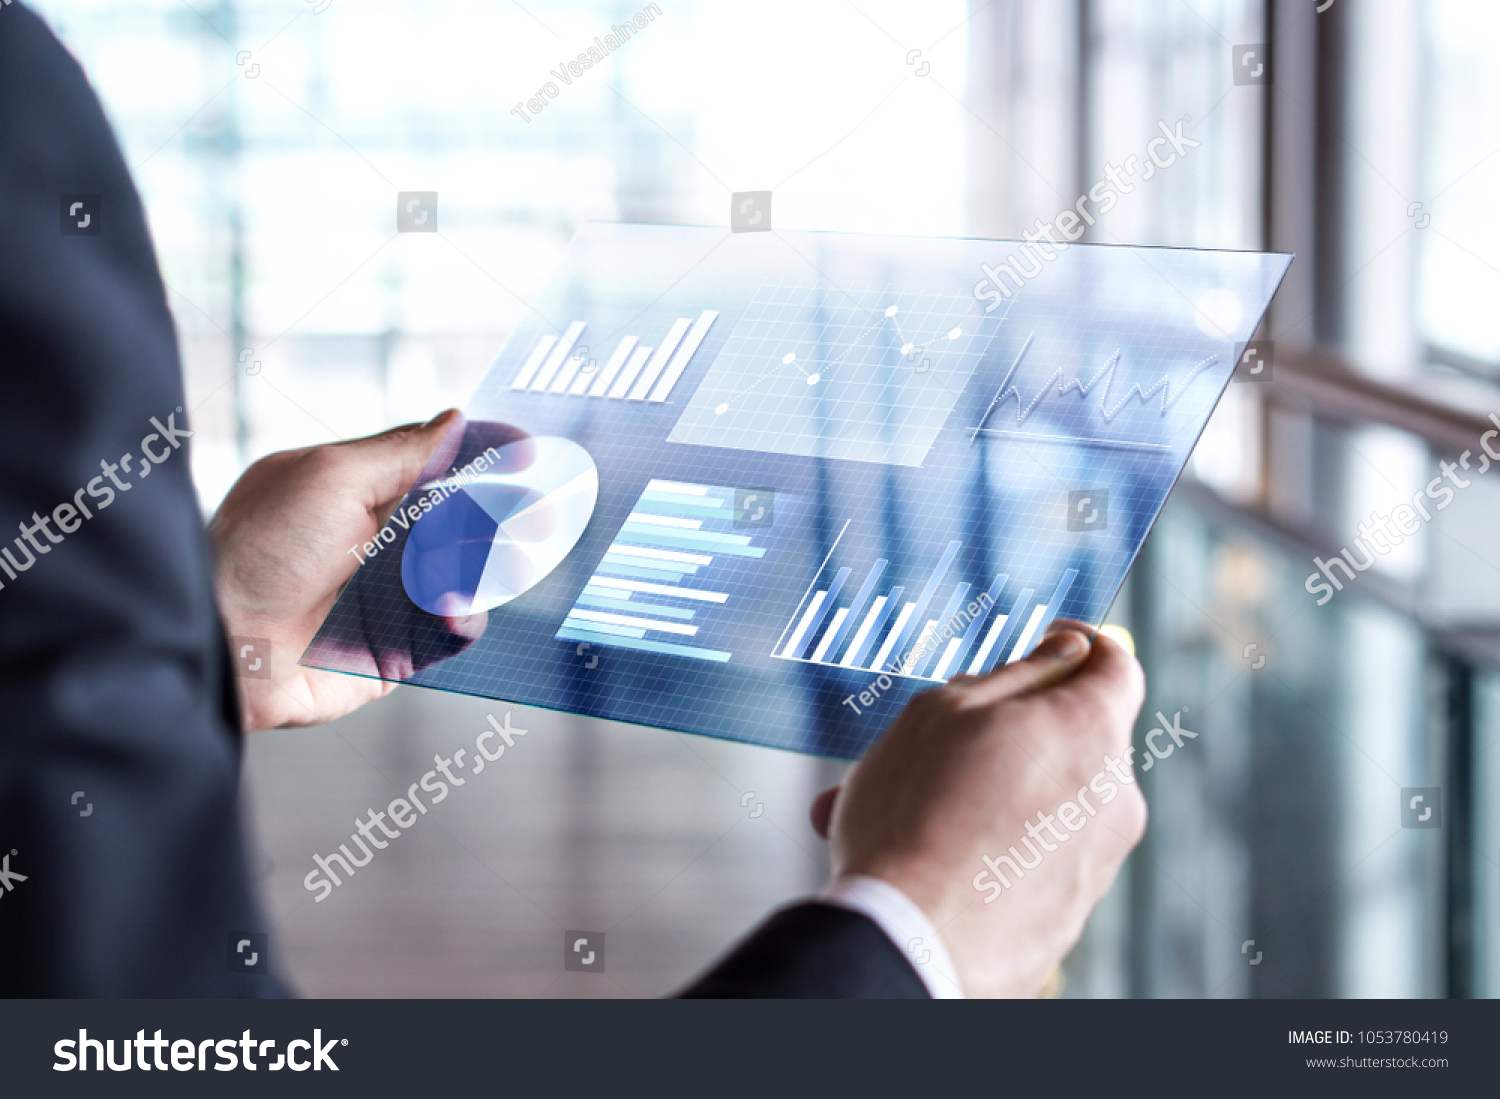 Transparent futuristic tablet. Business man using virtual touch screen. Modern mobile technology in accounting, finance, data and analytics. Internet of things (IOT) and augmented reality concept. #1053780419